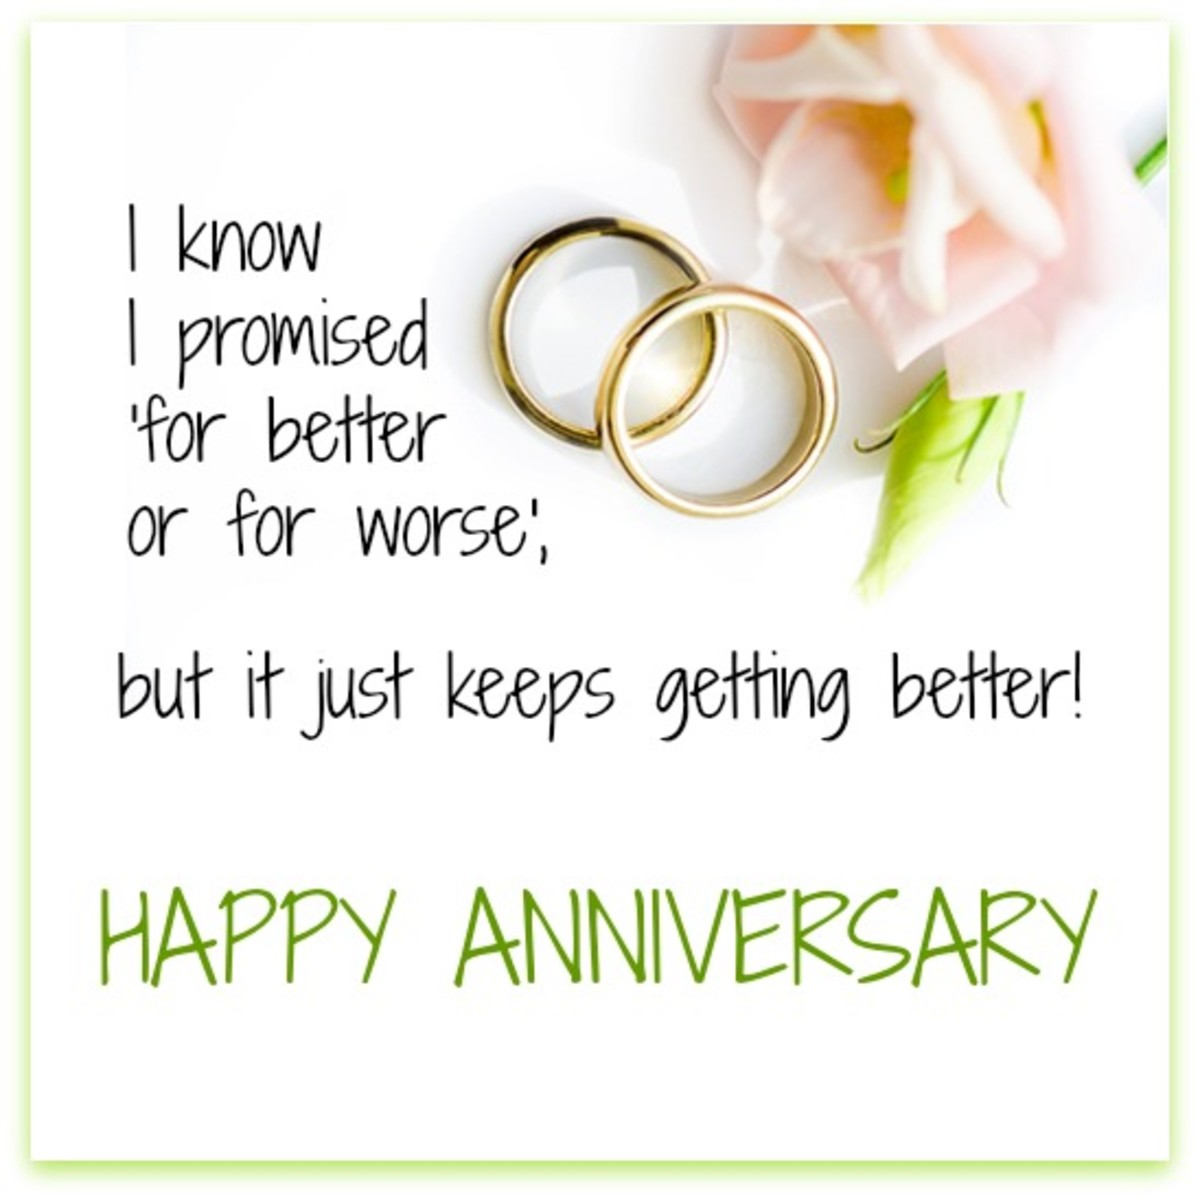 Happy anniversary messages and wishes holidappy these meaningful messages for spouses are designed to warm the heart m4hsunfo Images